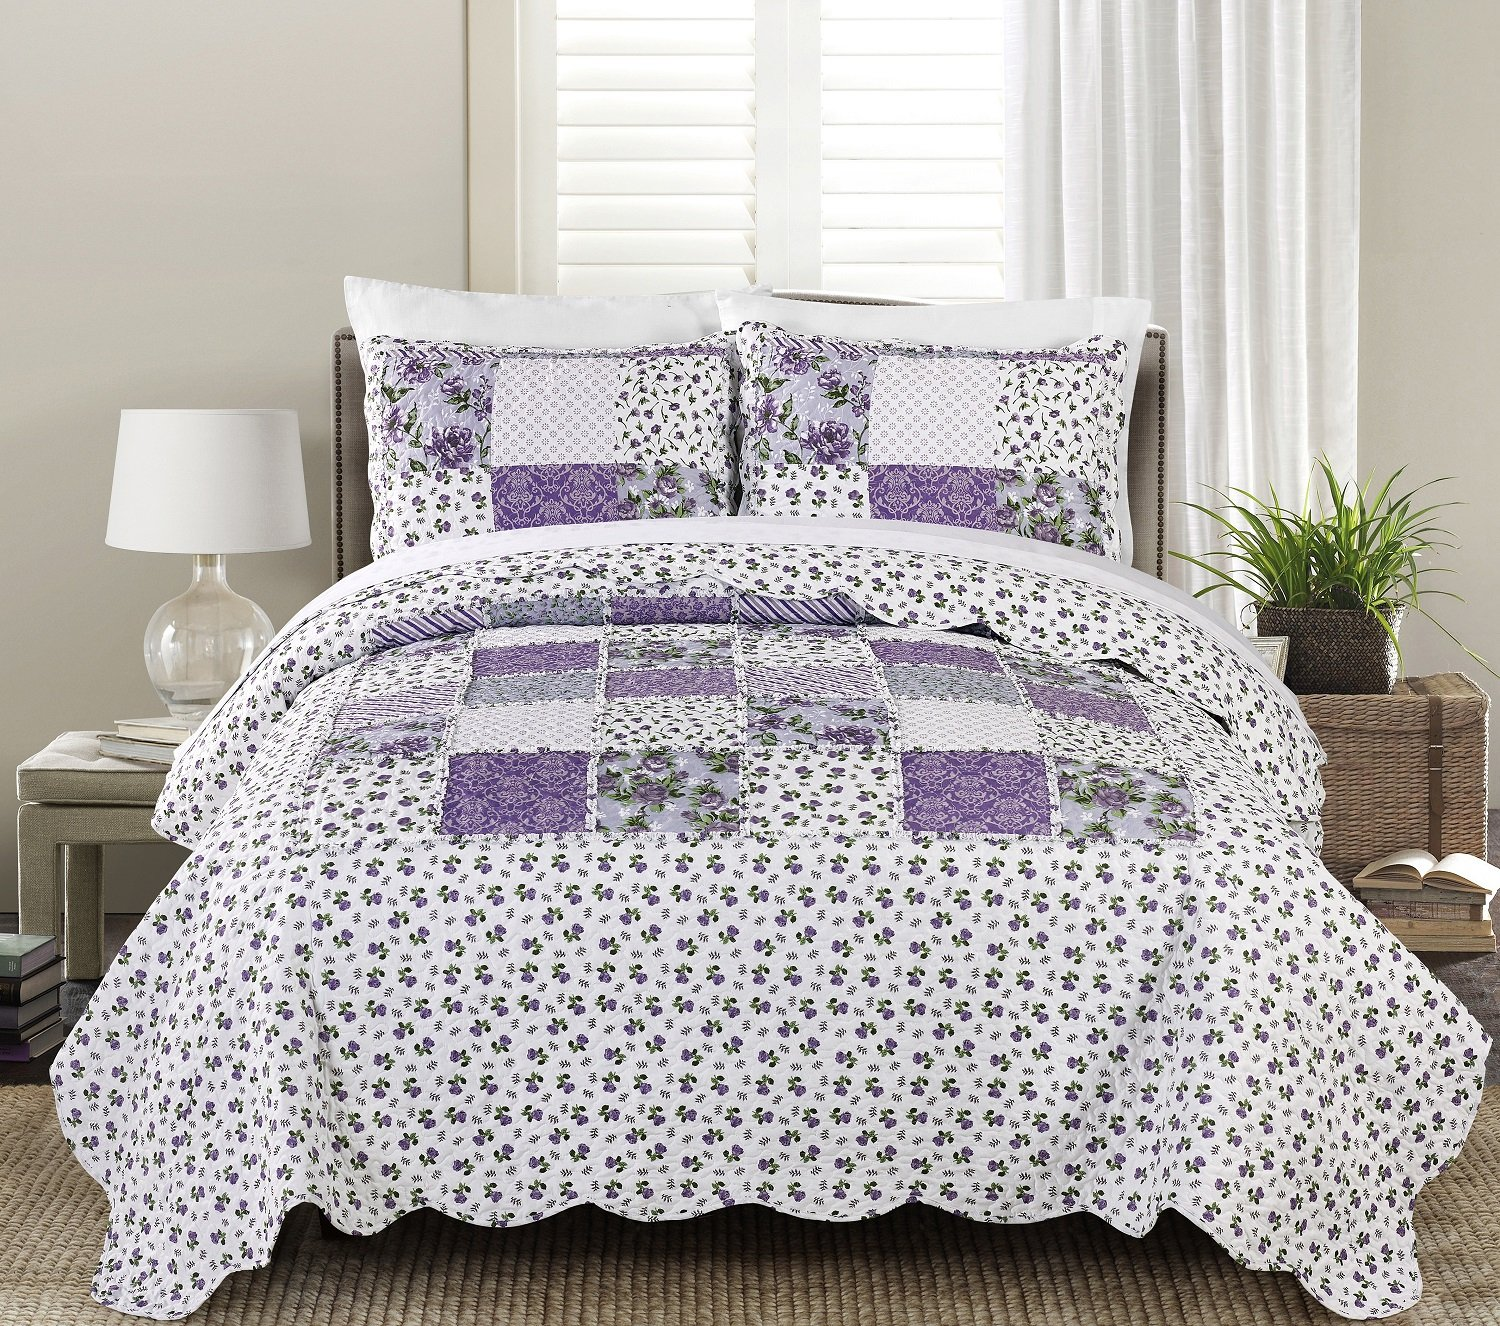 Blissful Living Luxury Ruffle Quilt Set Including Shams - Lightweight and Soft for all Seasons - Beatrice Lavender - Full/Queen